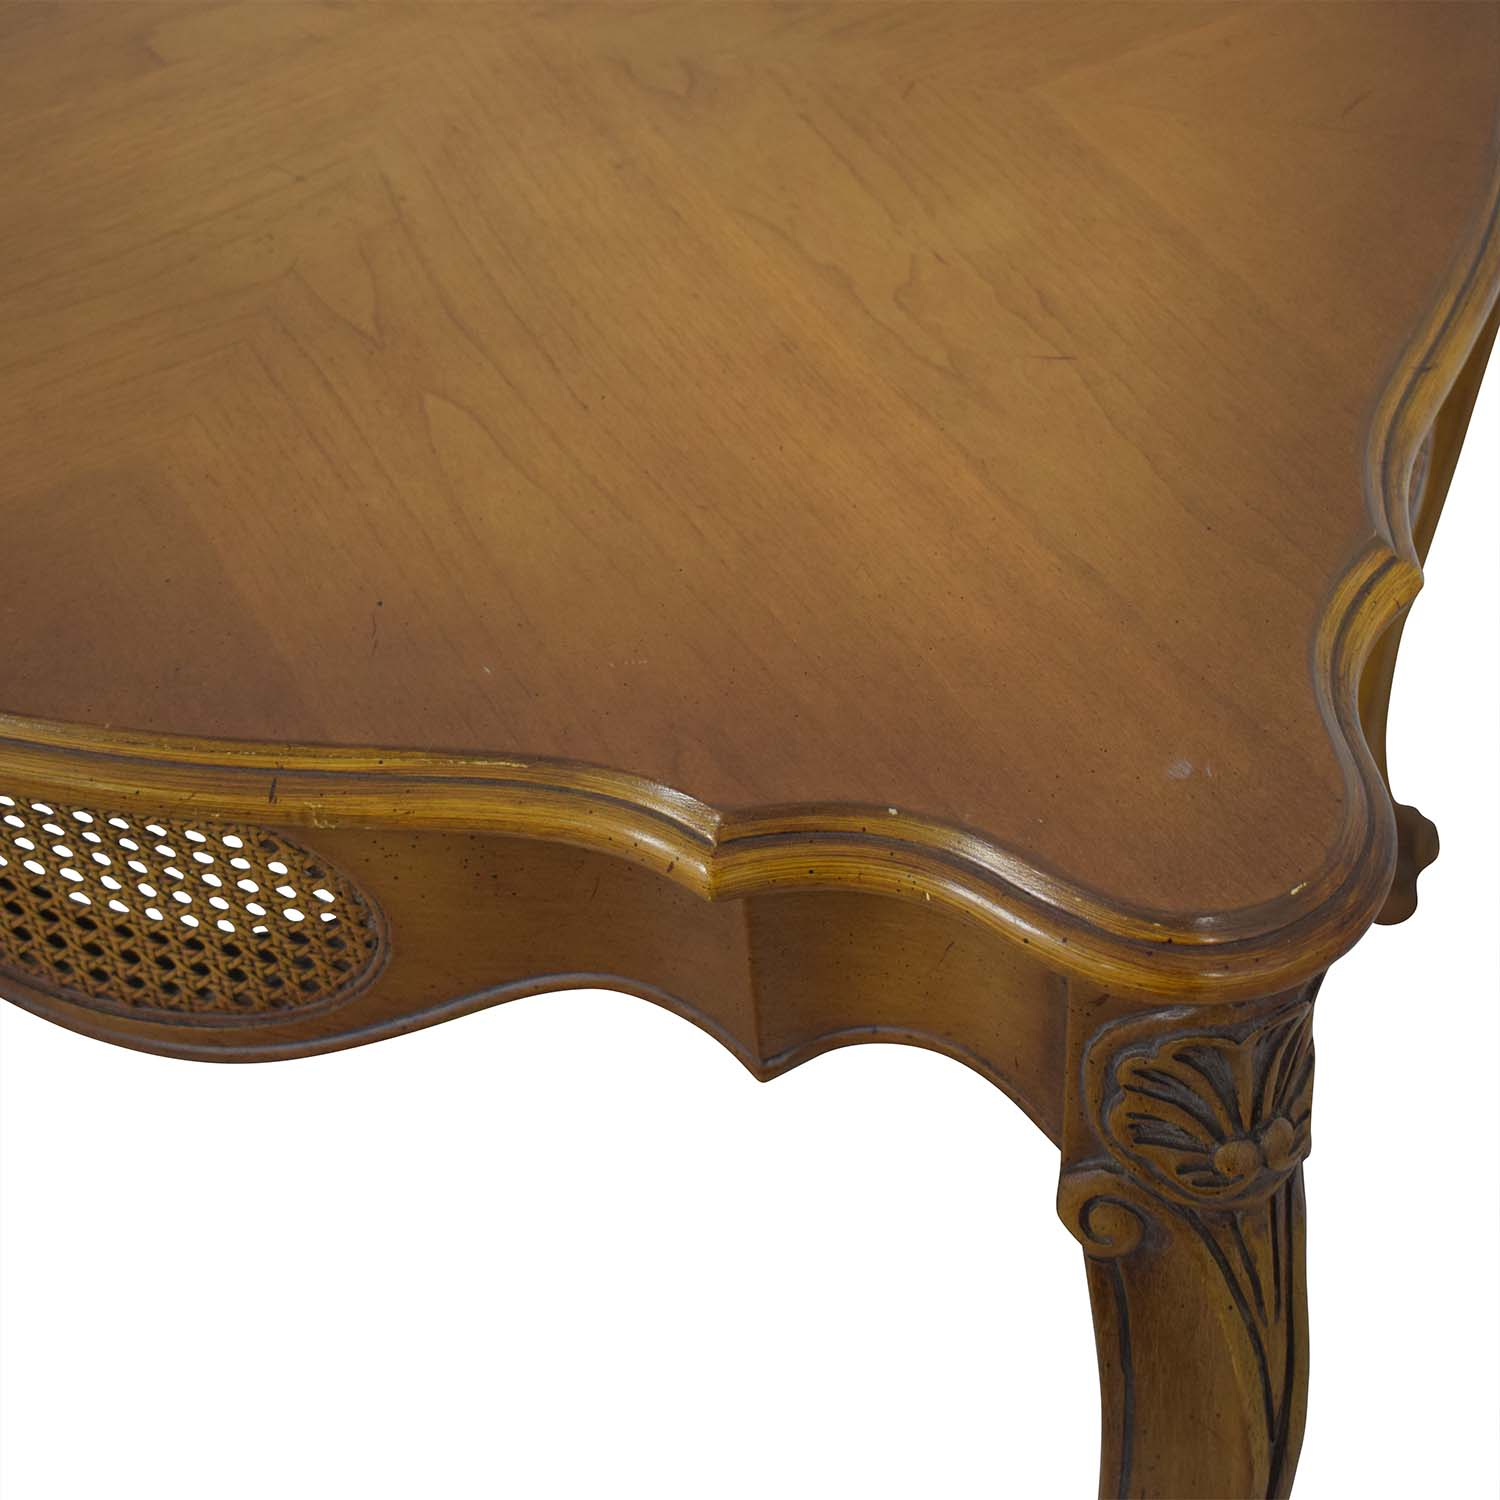 French Provincial Cane Weave Accent Table / Tables